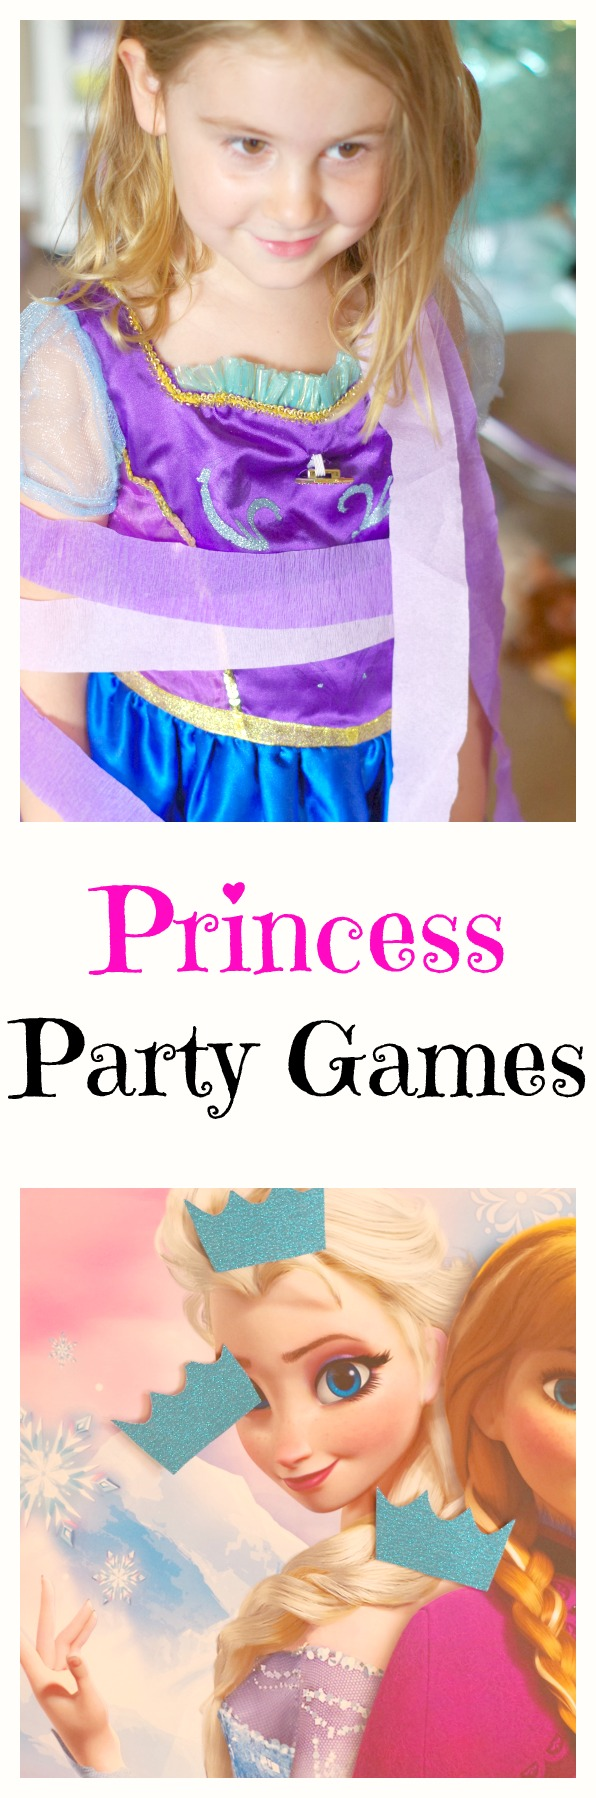 Princess Party Games! Make your princess party extra fun with all of these easy princess party games